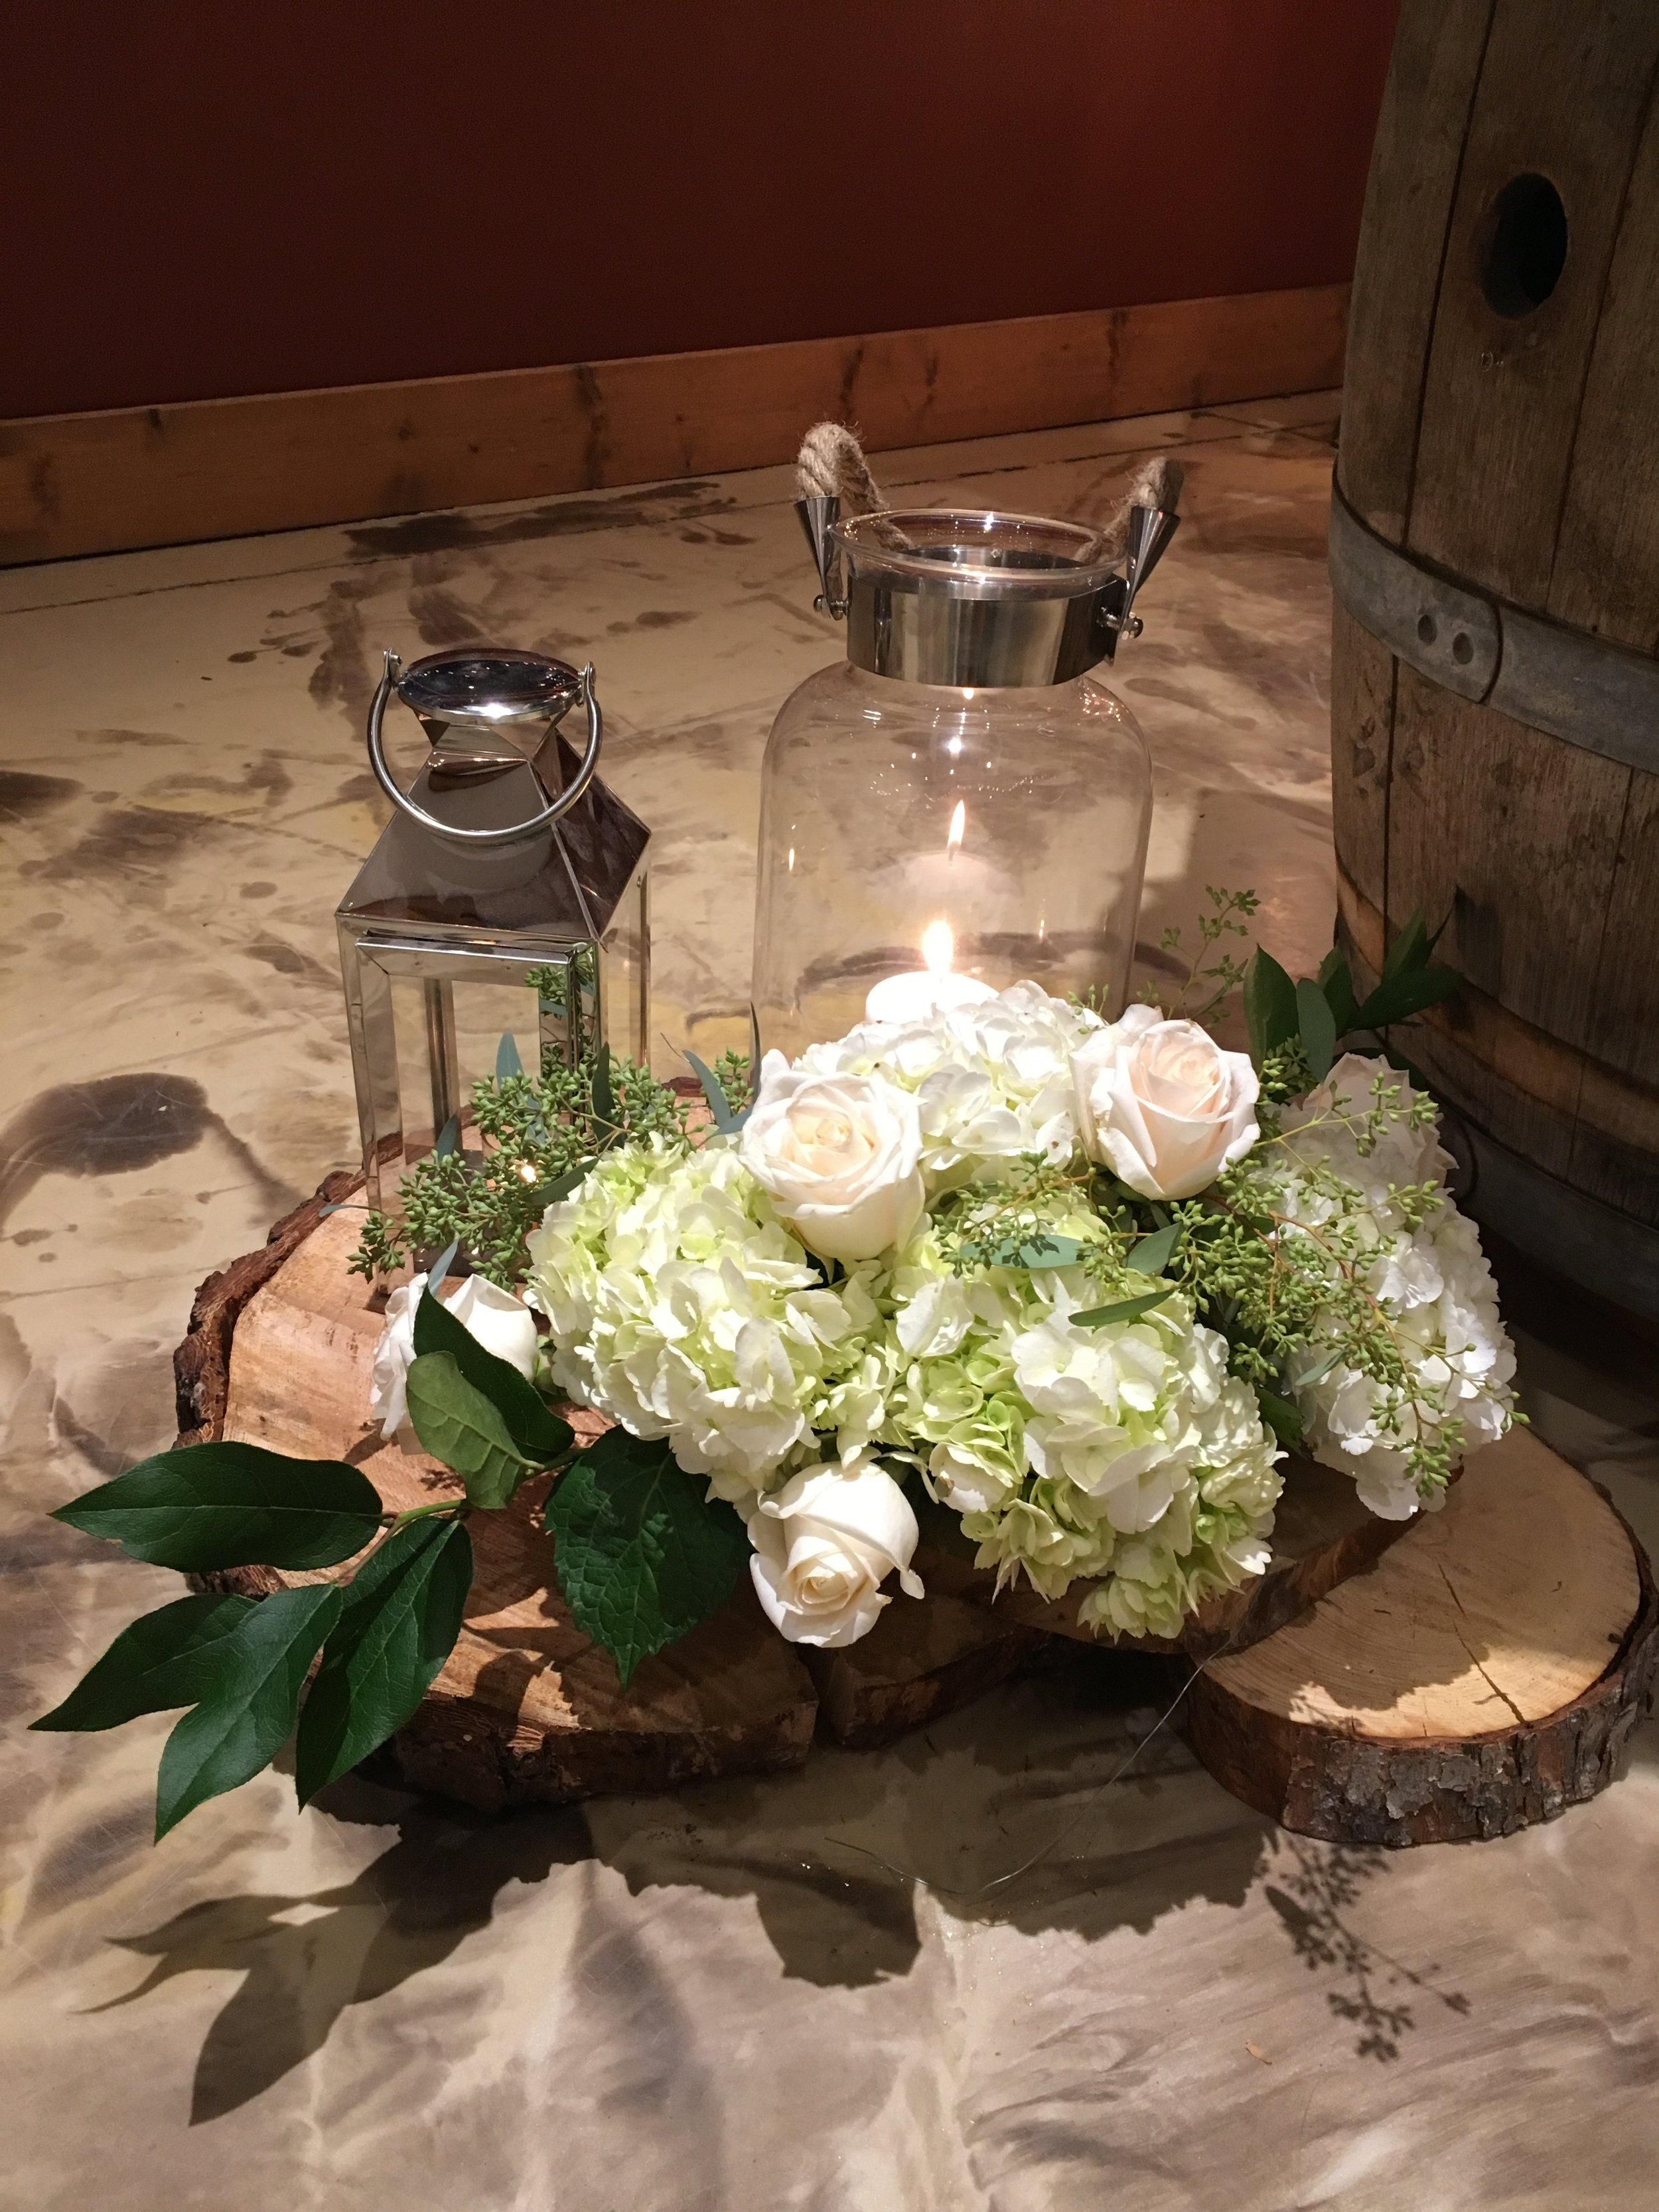 The day was filled with so many fun details made by the Father of the Bride.  From the living edge guest book table to birch wine bottle holders, birchwood arch, and birch tea light holders for each guest to take home.